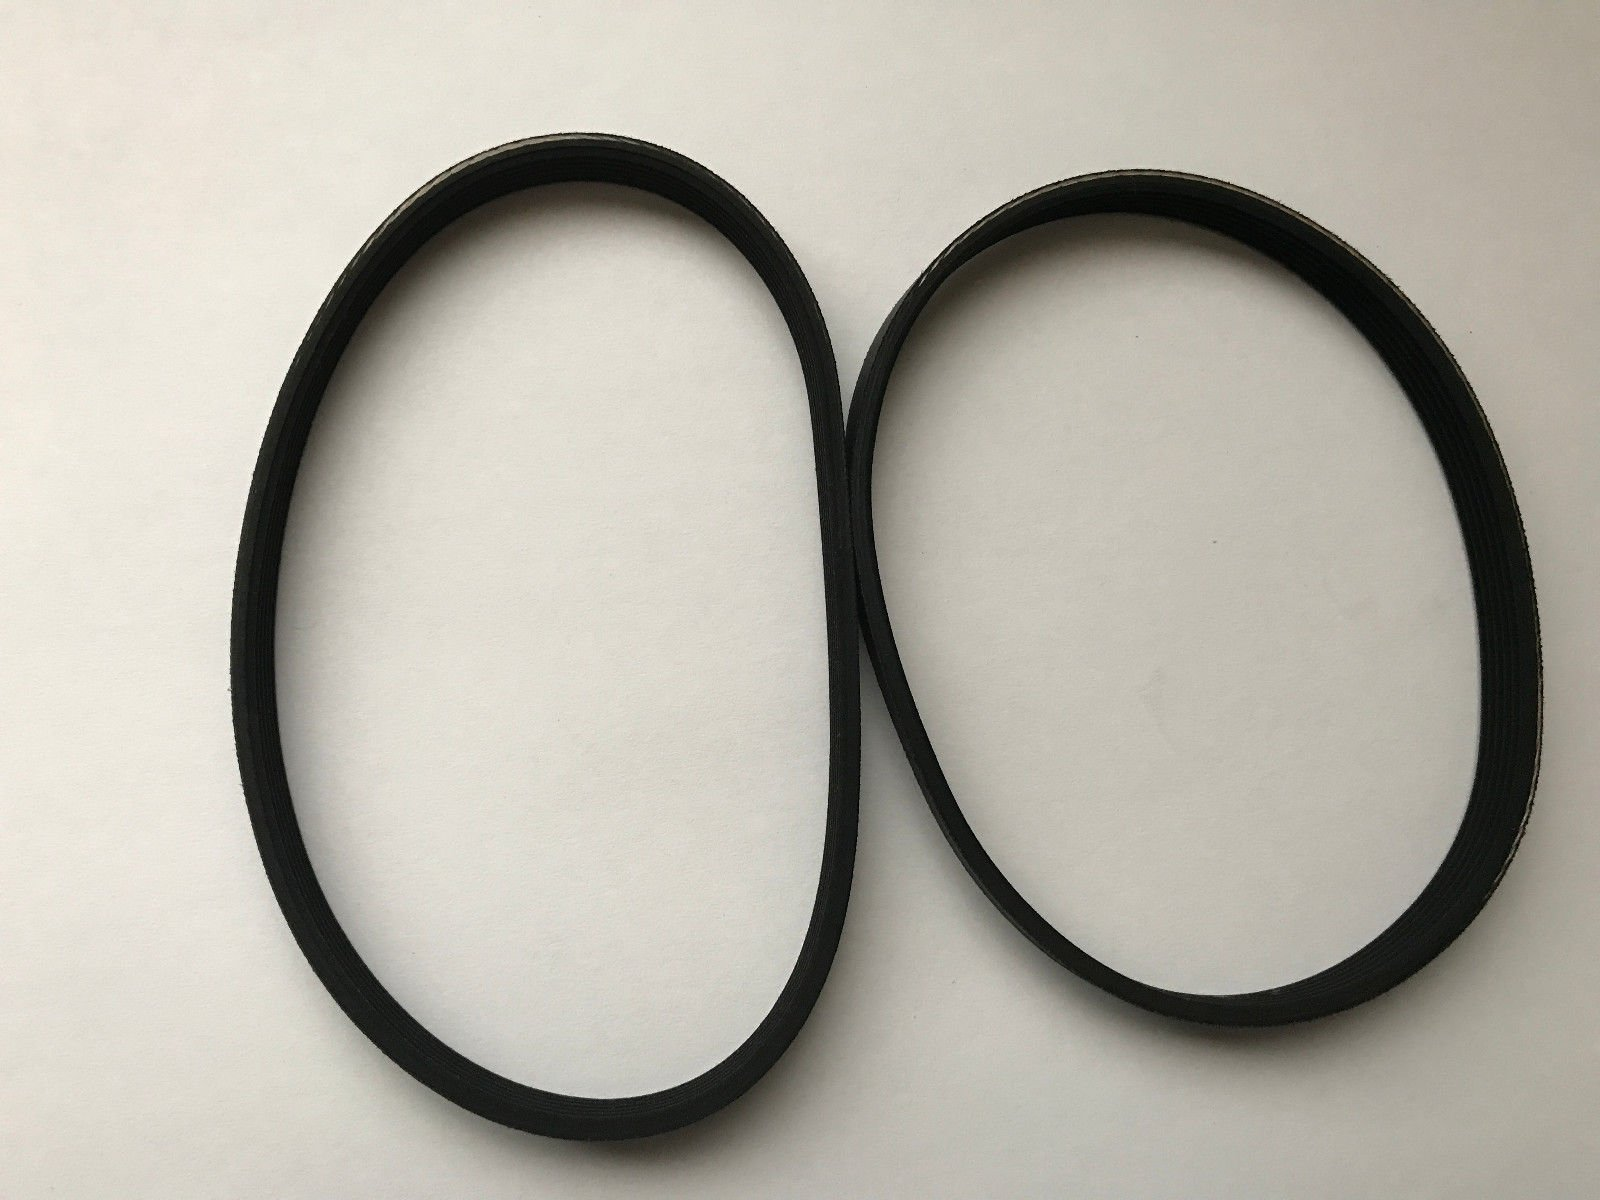 2 New Replacement Belts Hoover Nanolite Vacuum Series ZH12.0